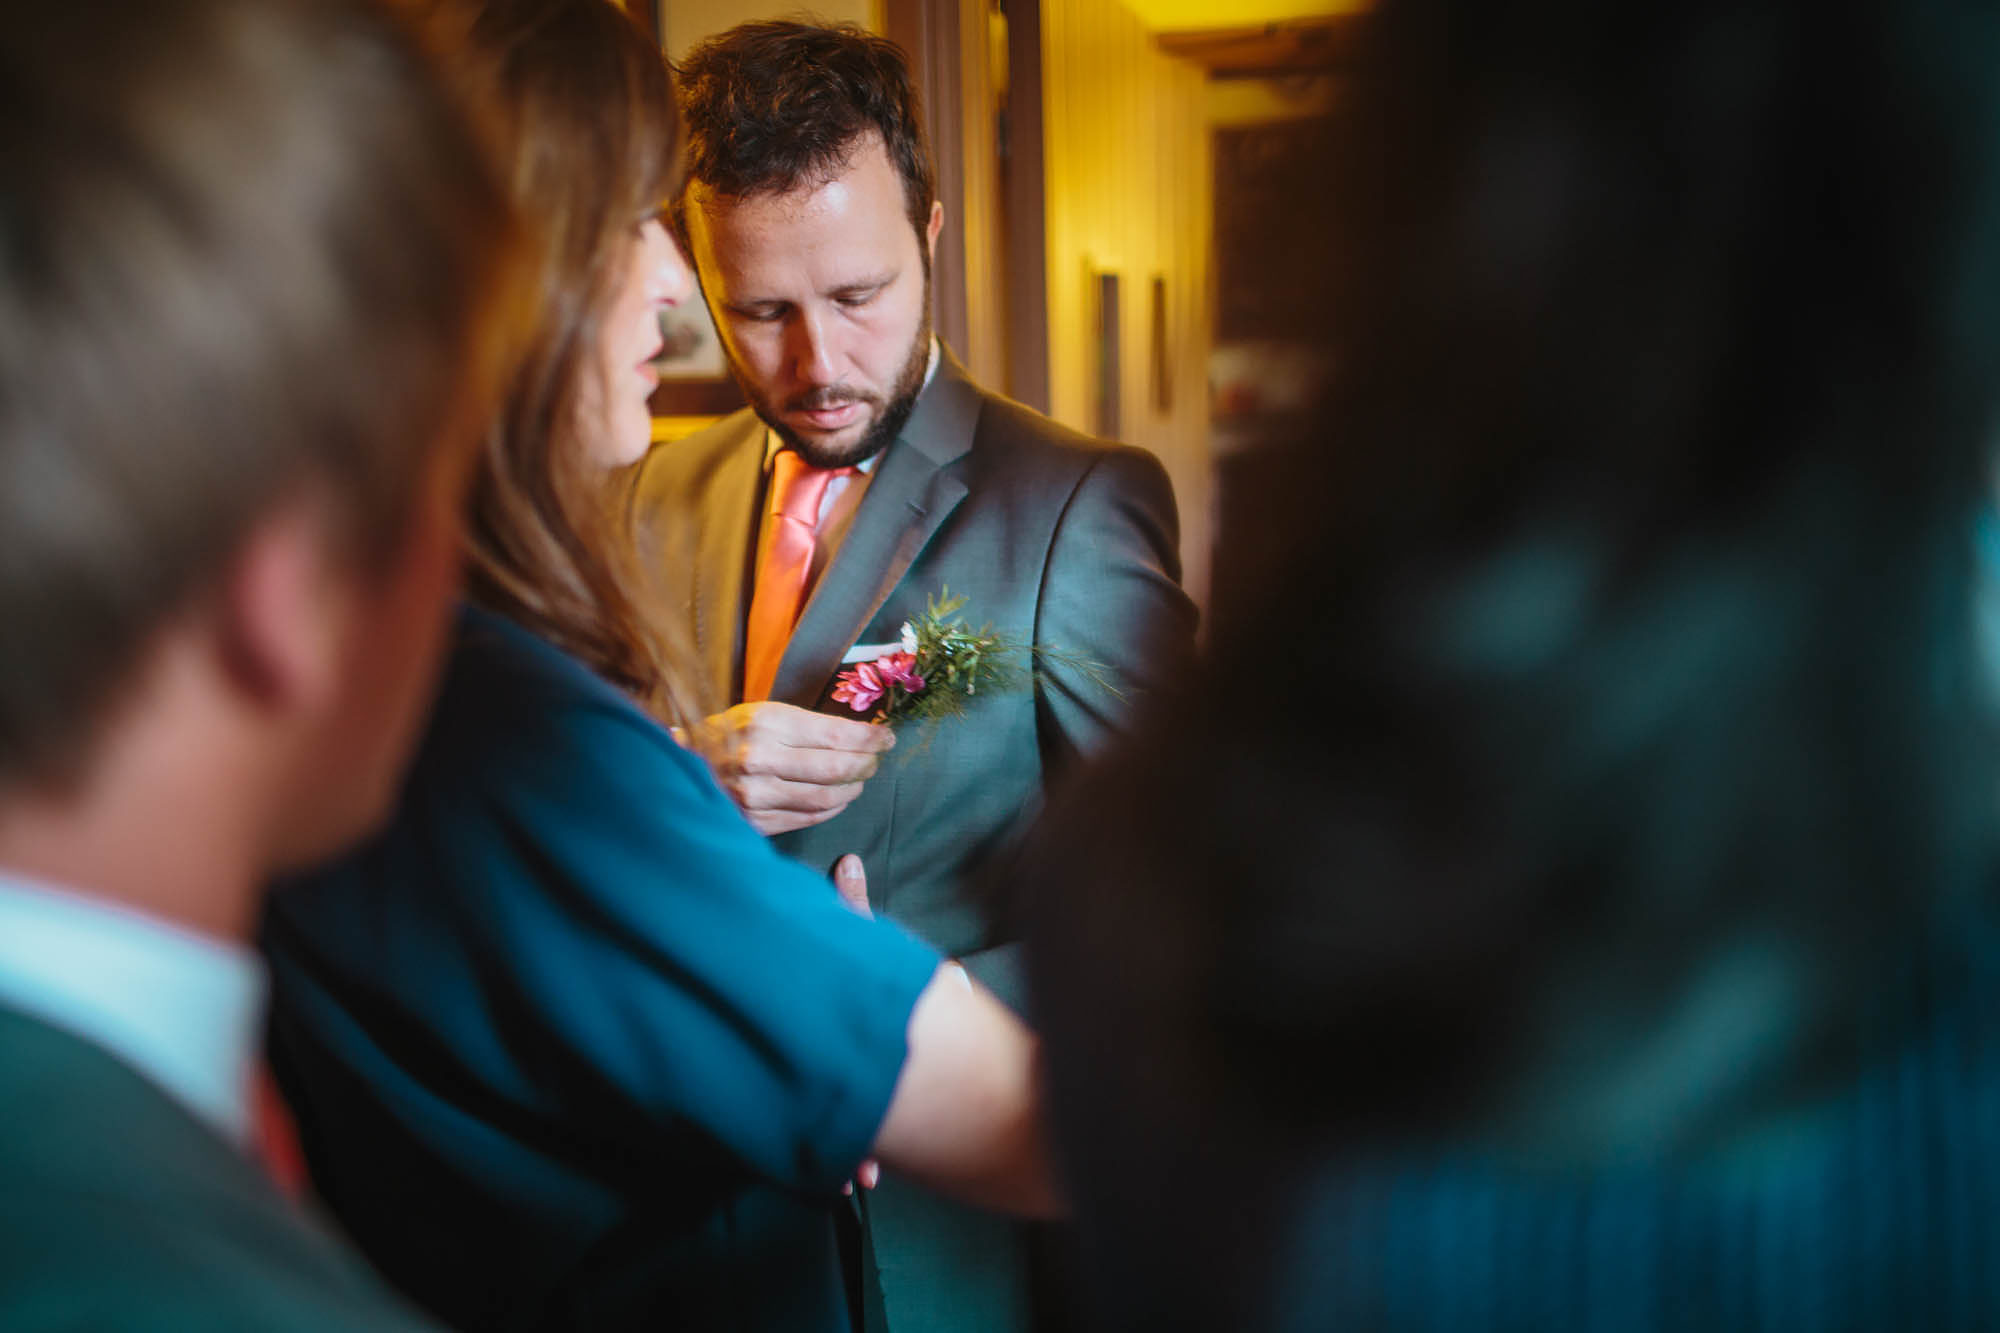 Best man attaches his buttonhole and flower on the wedding day in Yorkshire